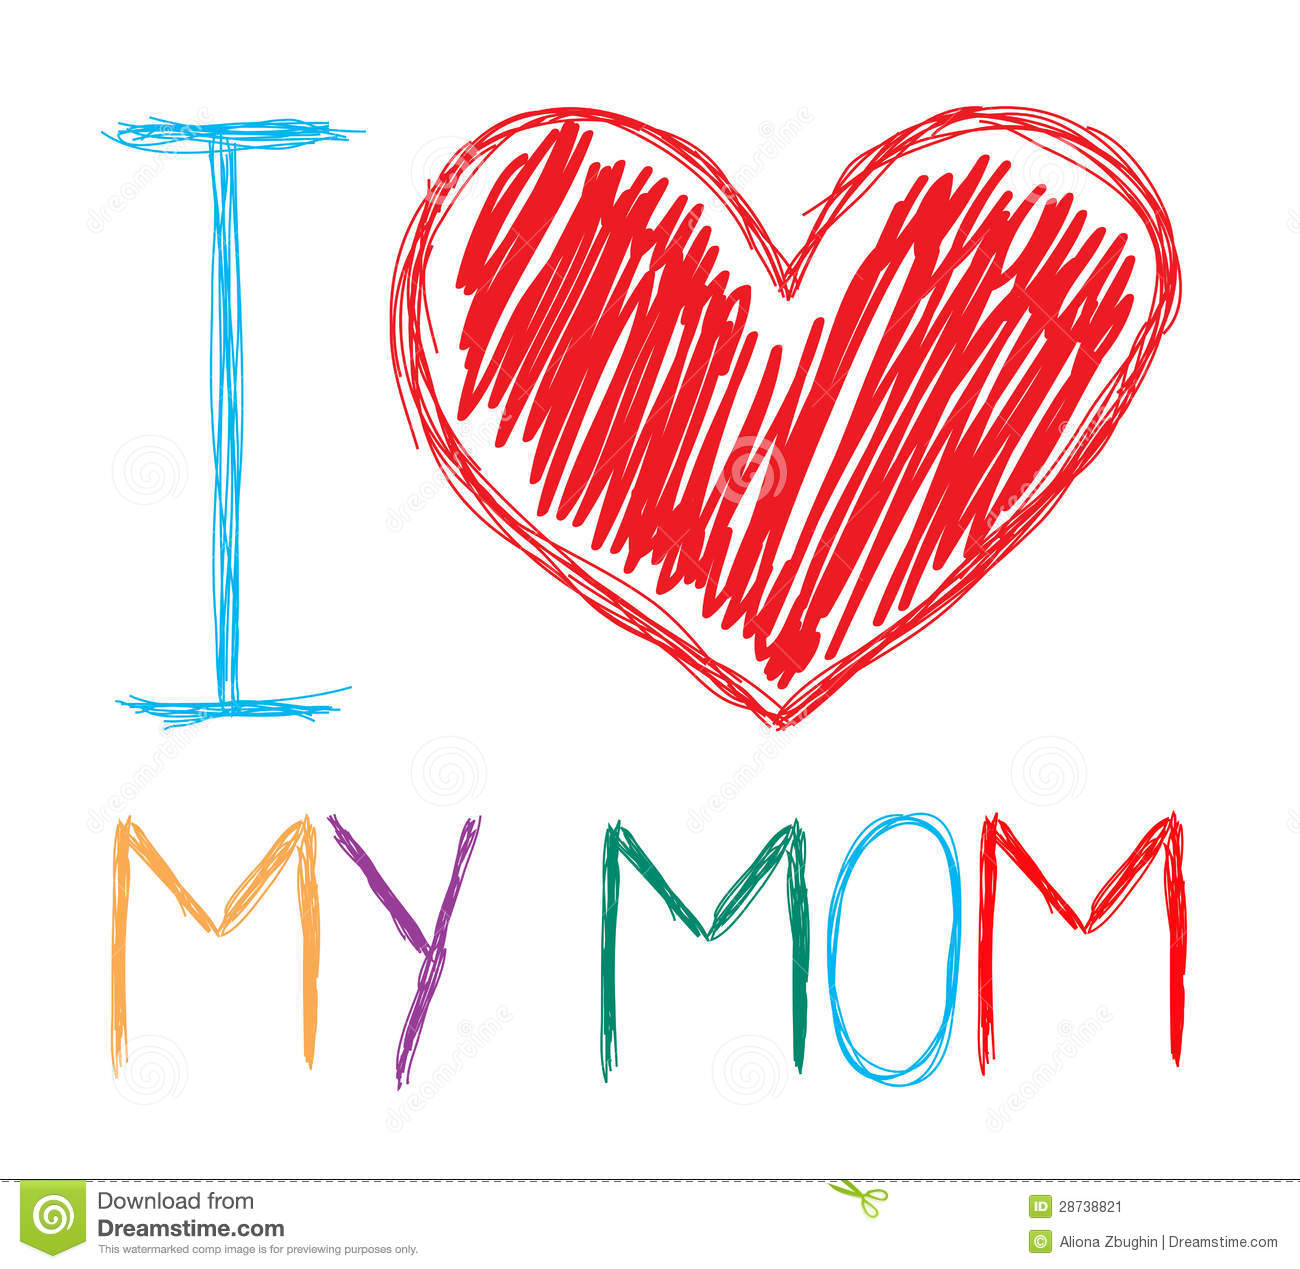 Saying clipart i love my mom #6